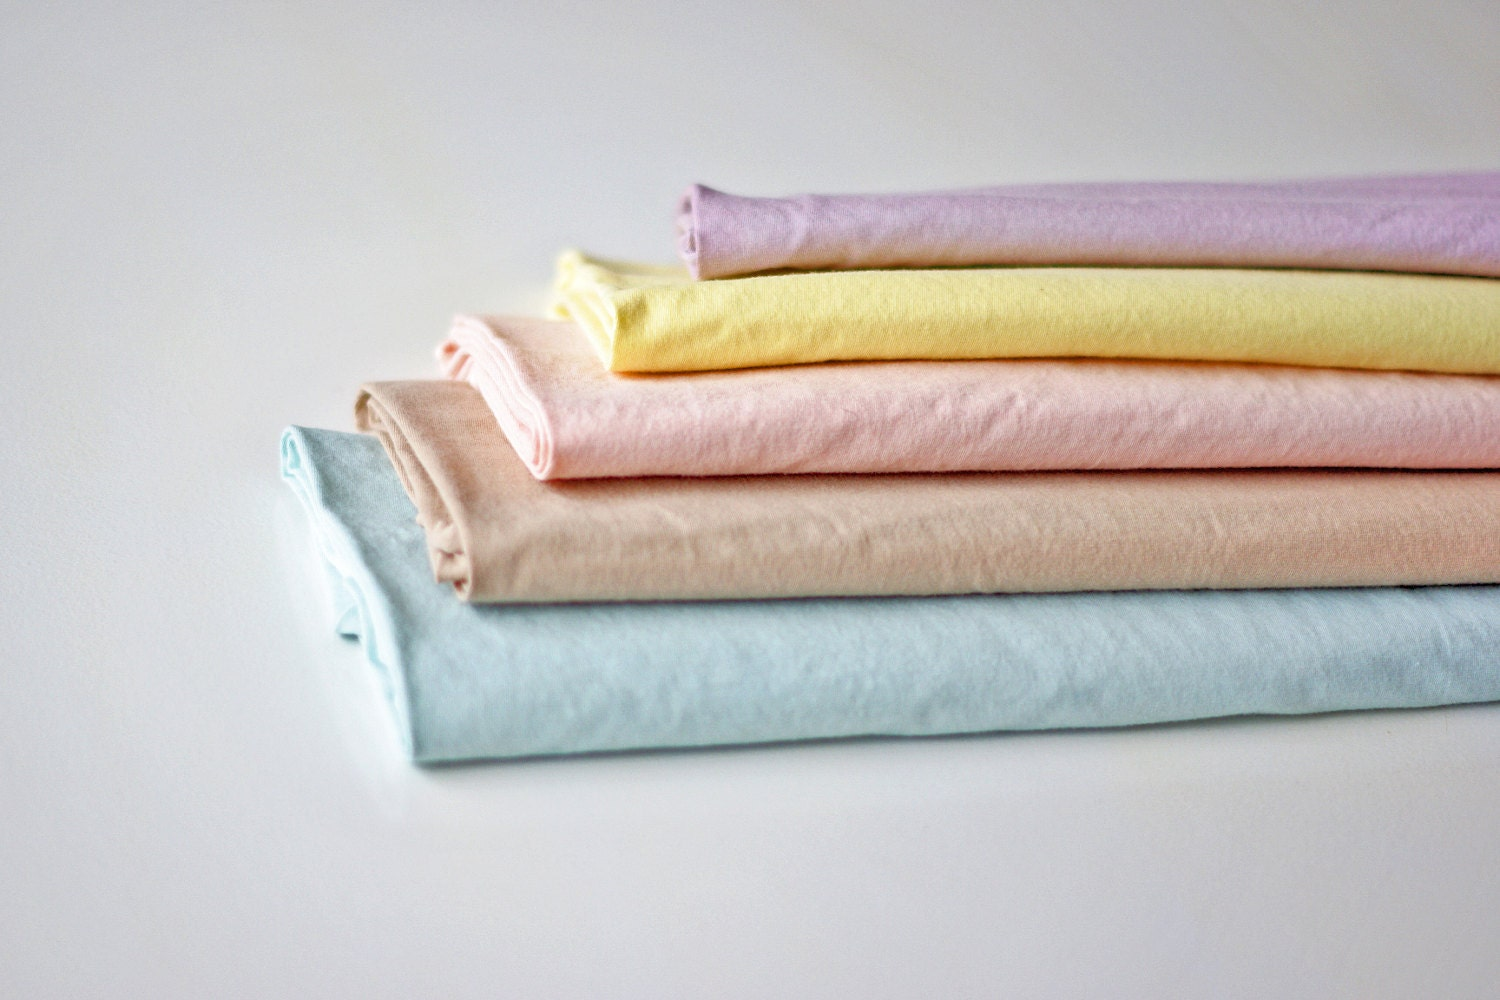 Natural dyes in pastel shades of aqua, beige, pink, yellow and purple.